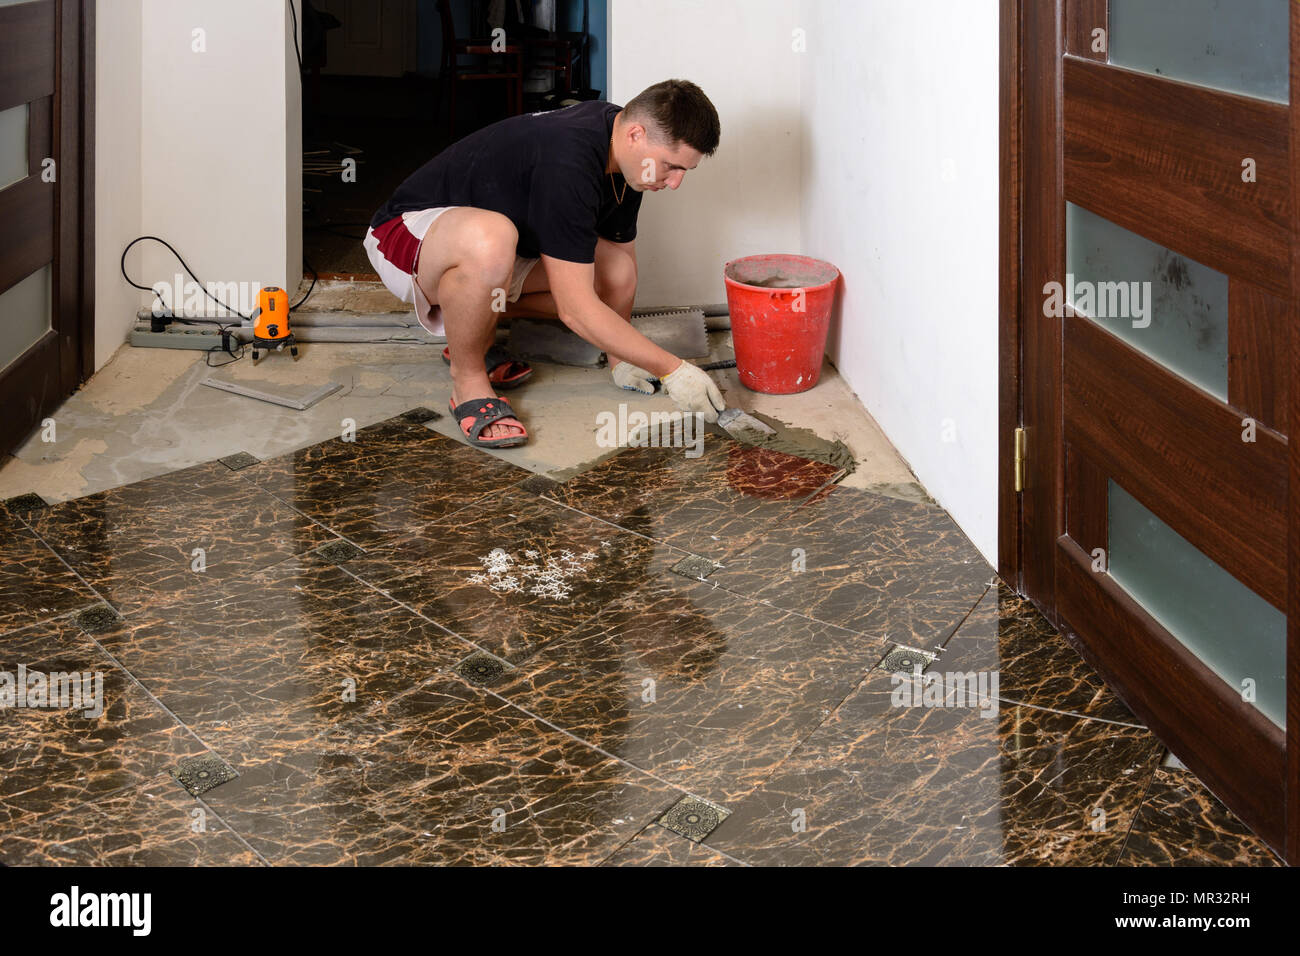 A Man Takes Extra Glue To Install A Ceramic Brown Tile In A Small